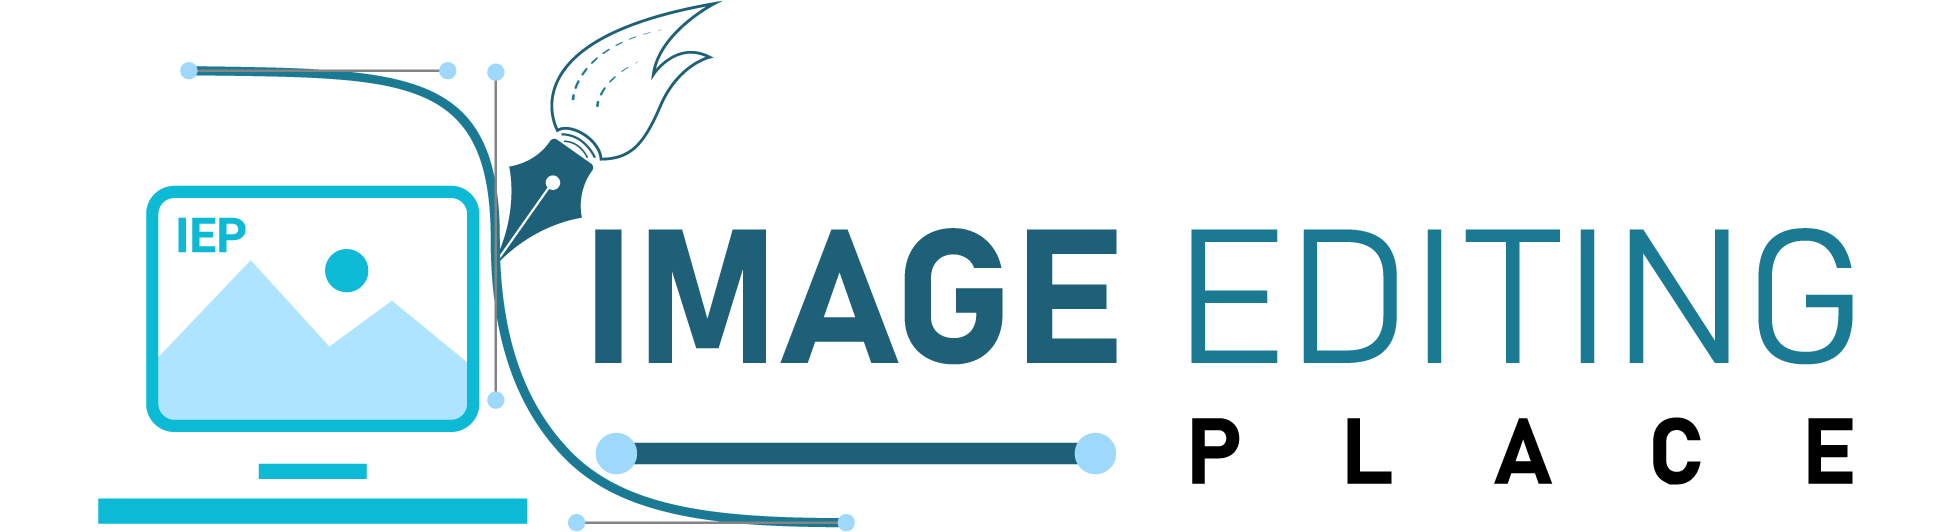 Image Editing Place